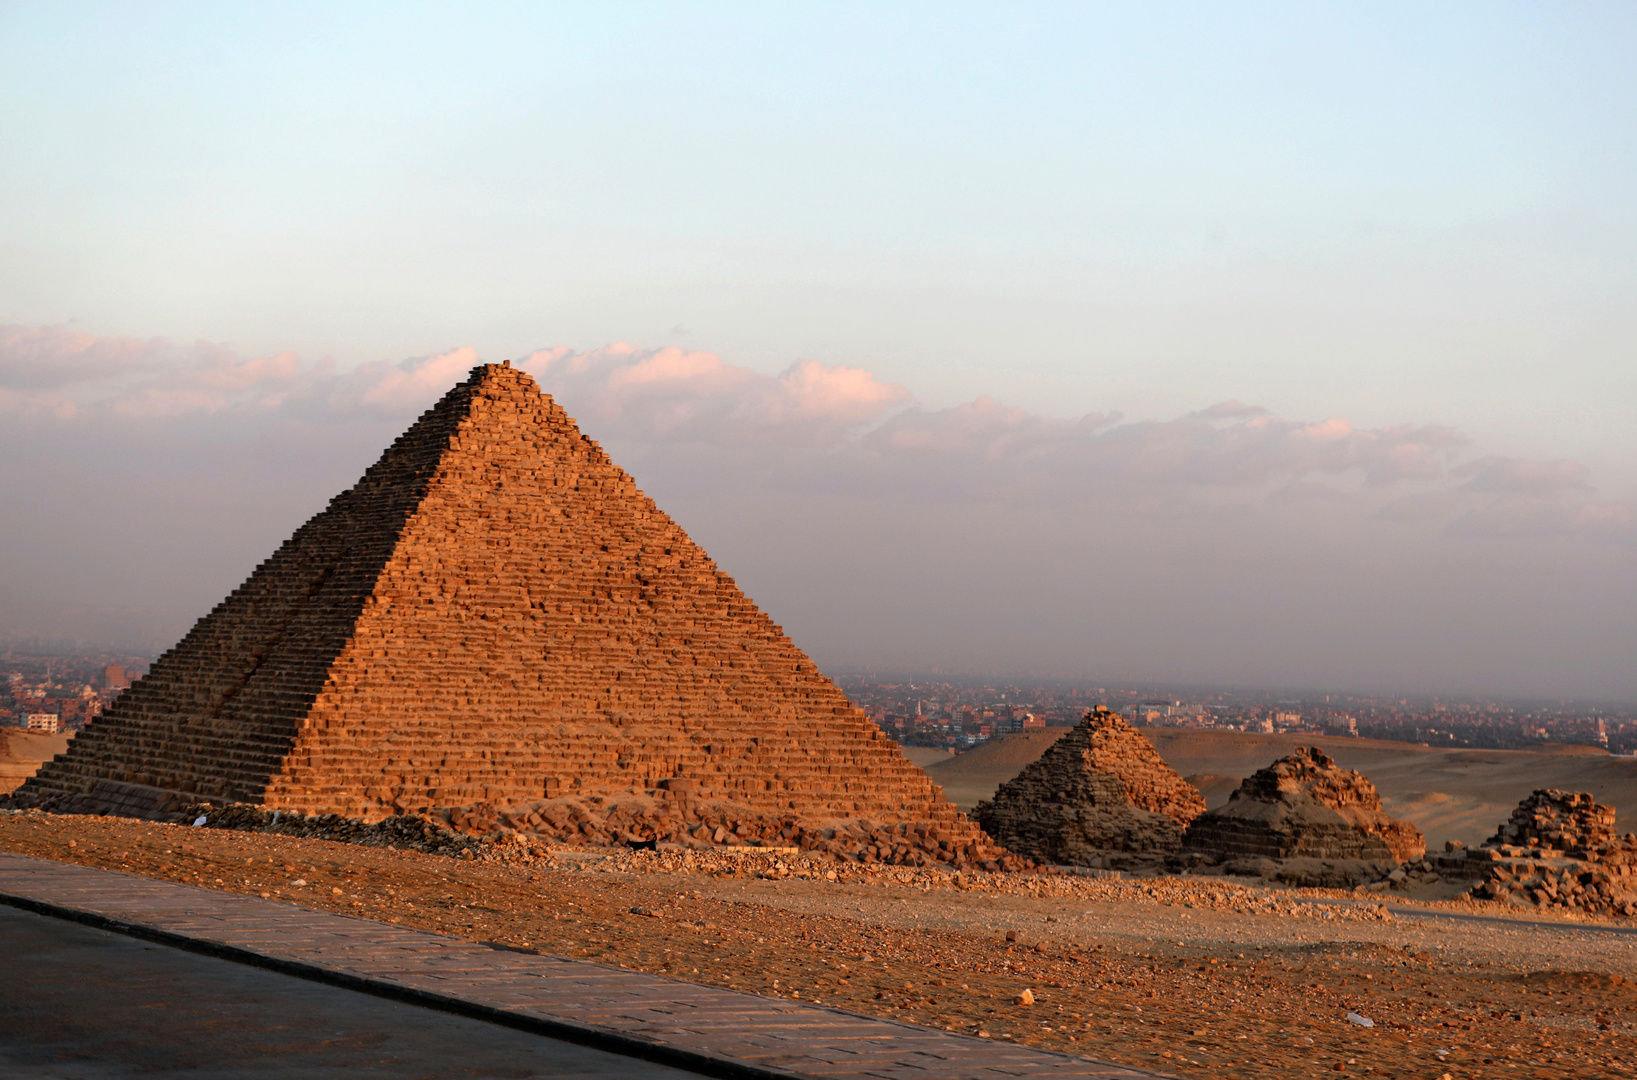 Two worlds spark a crisis in Egypt .. the pyramids